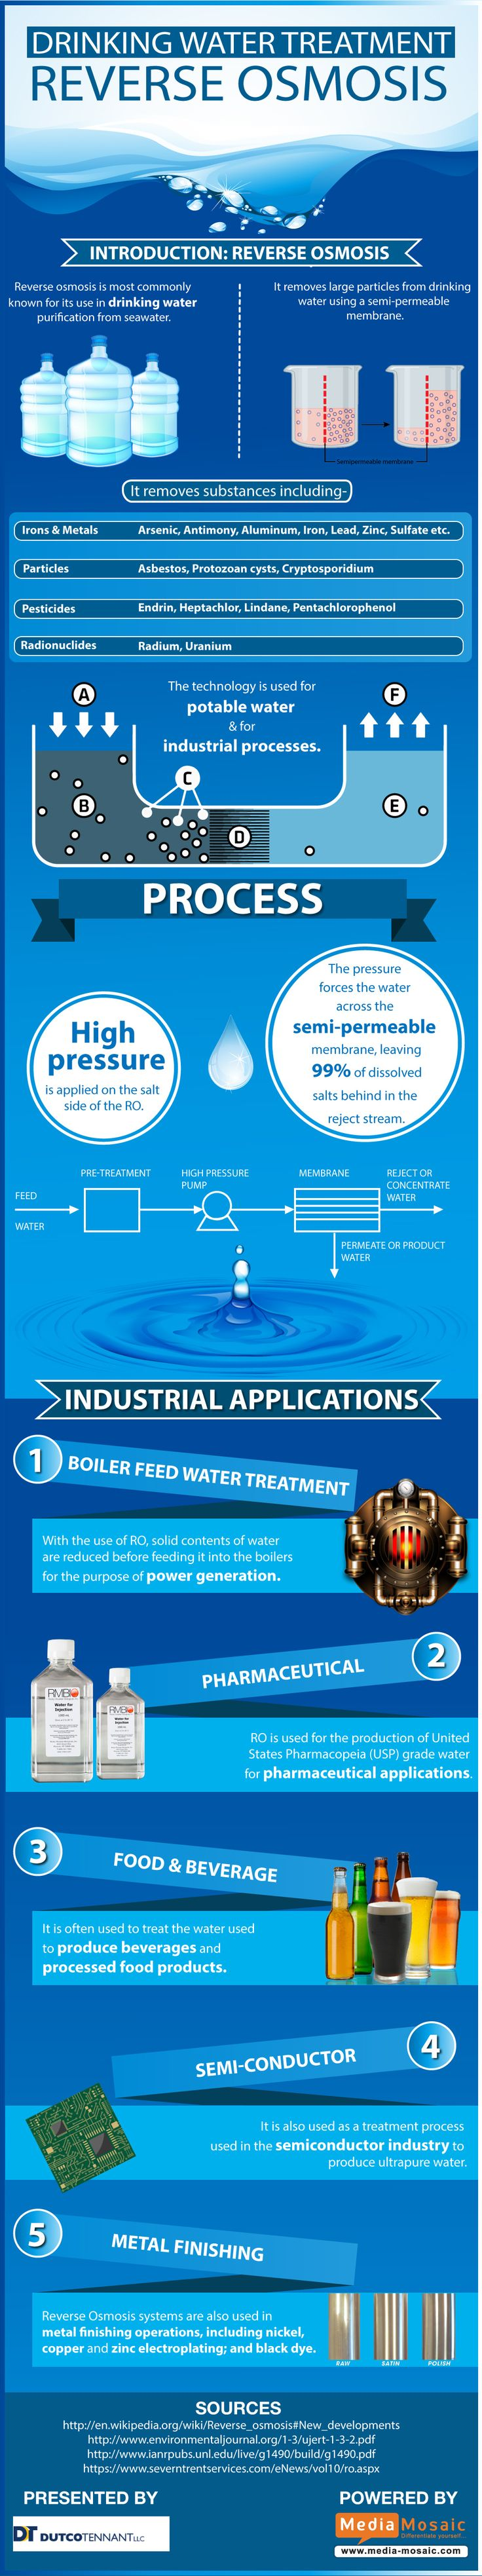 Reverse Osmosis is known for its wide use in drinking water purification. Read this interesting infographic to know more about its industrial uses | Posted By: SurvivalofthePrepped.com |